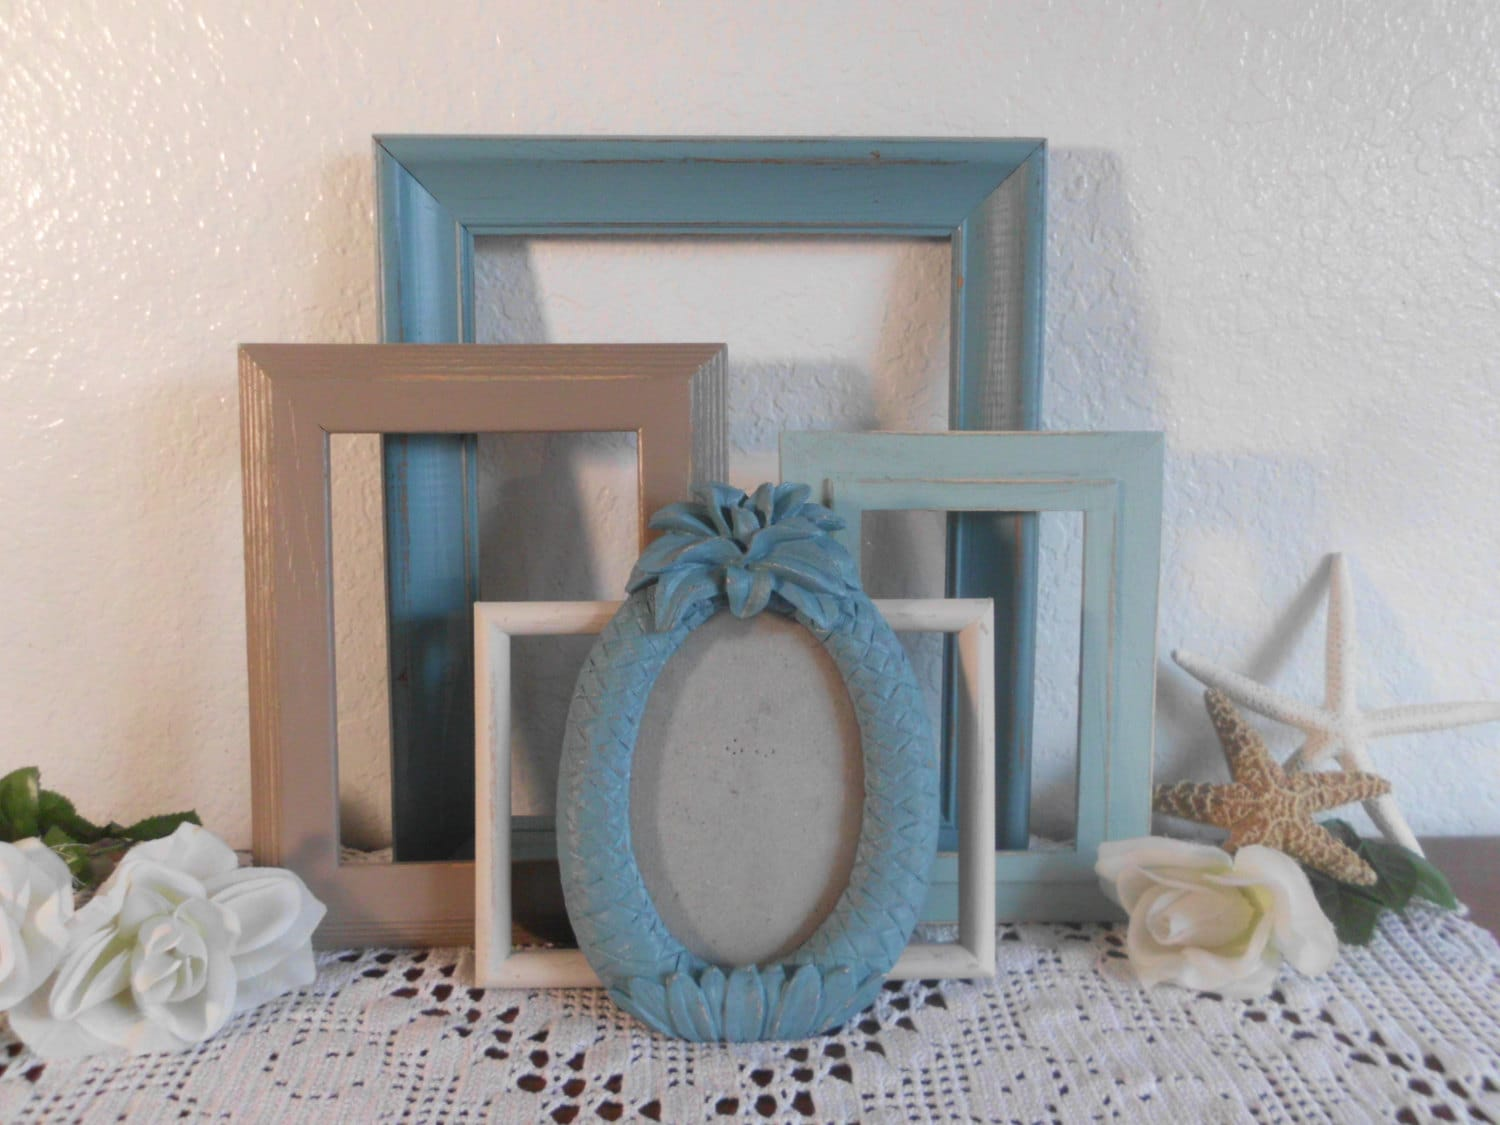 Coastal Decor Shabby Chic: Beach Cottage Frames Shabby Chic Rustic Distressed Picture